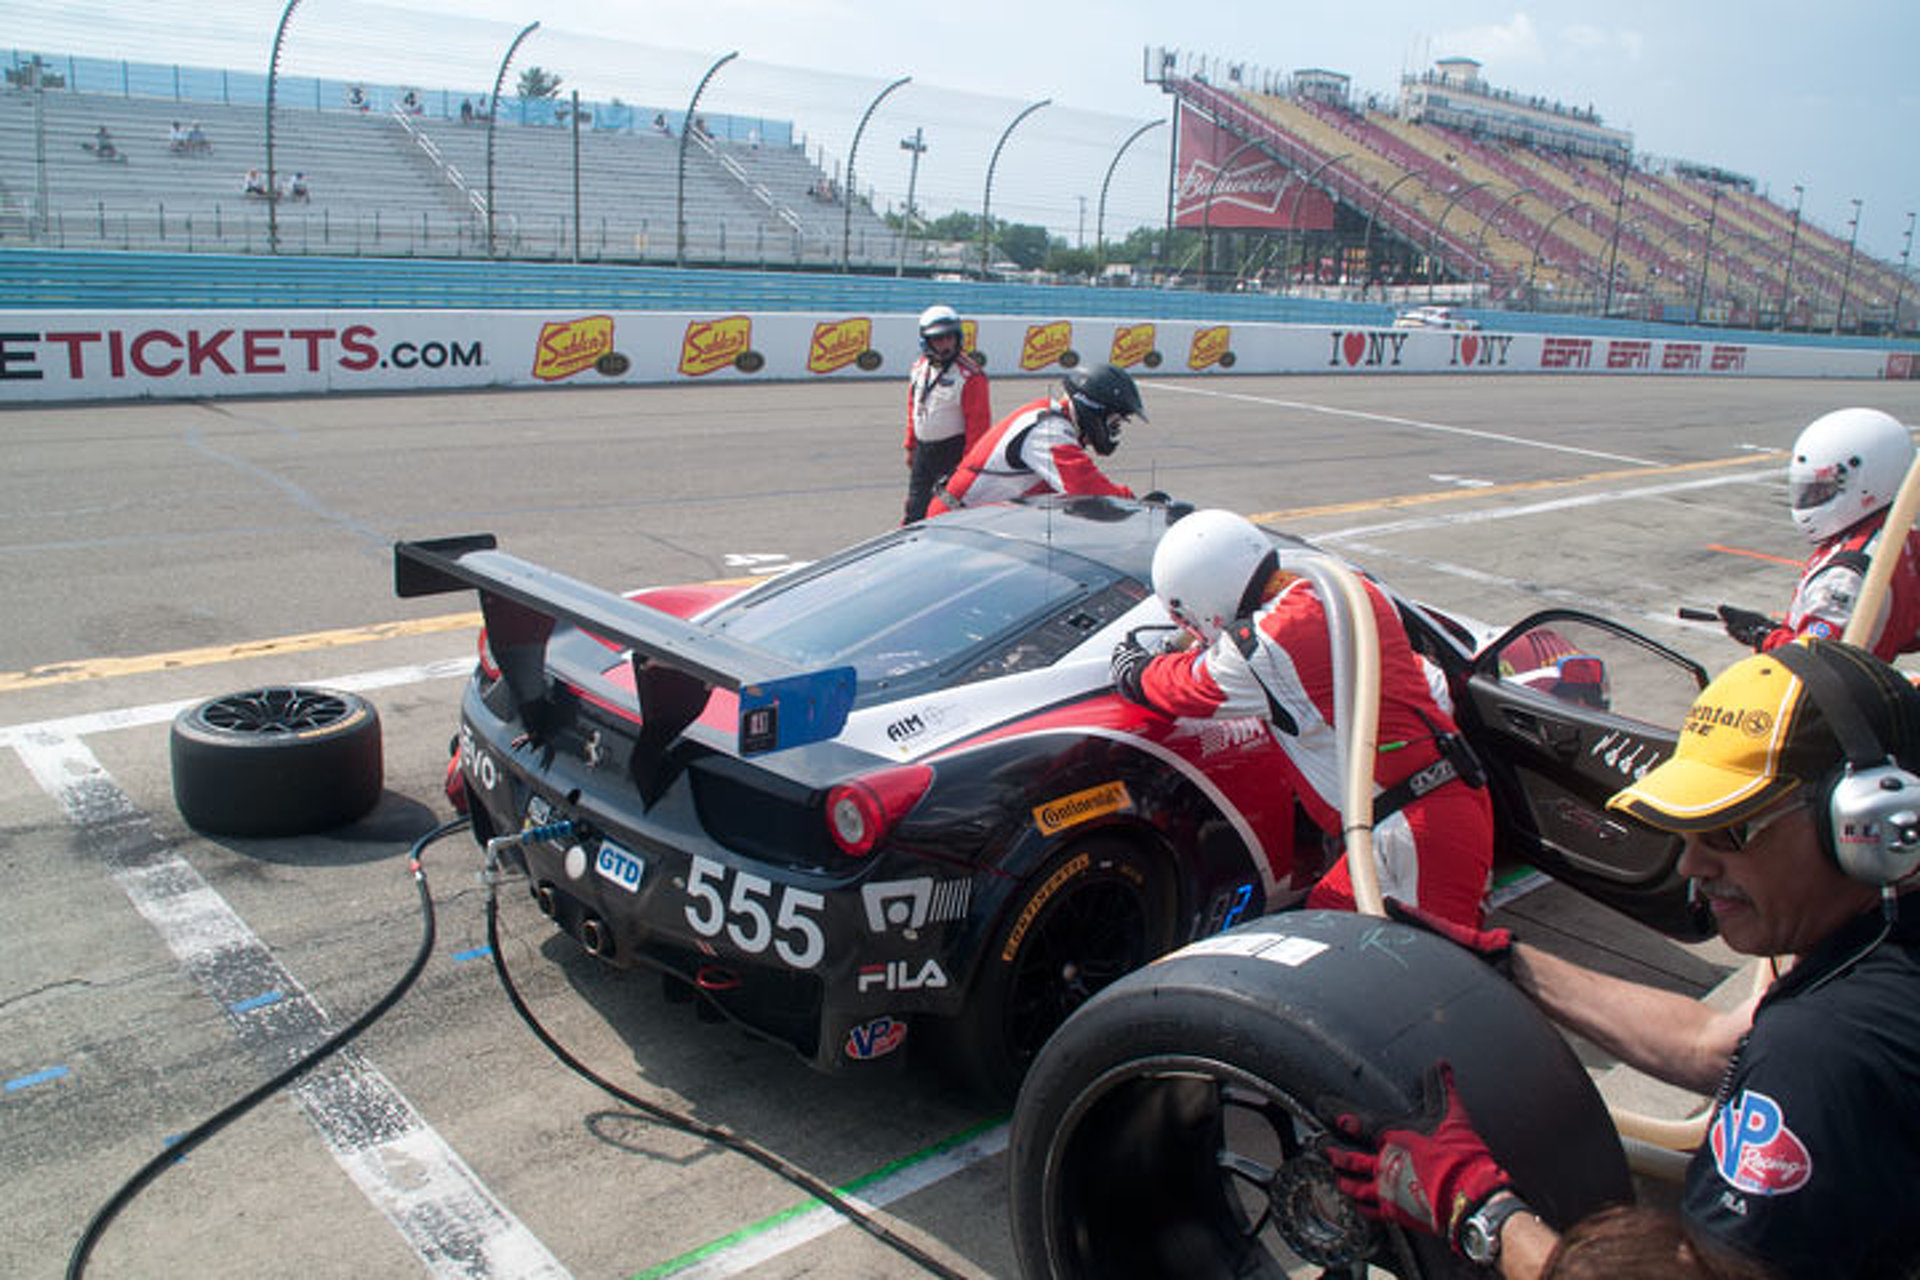 Life in the Pits: There's a Lot More to Racing than the Driver